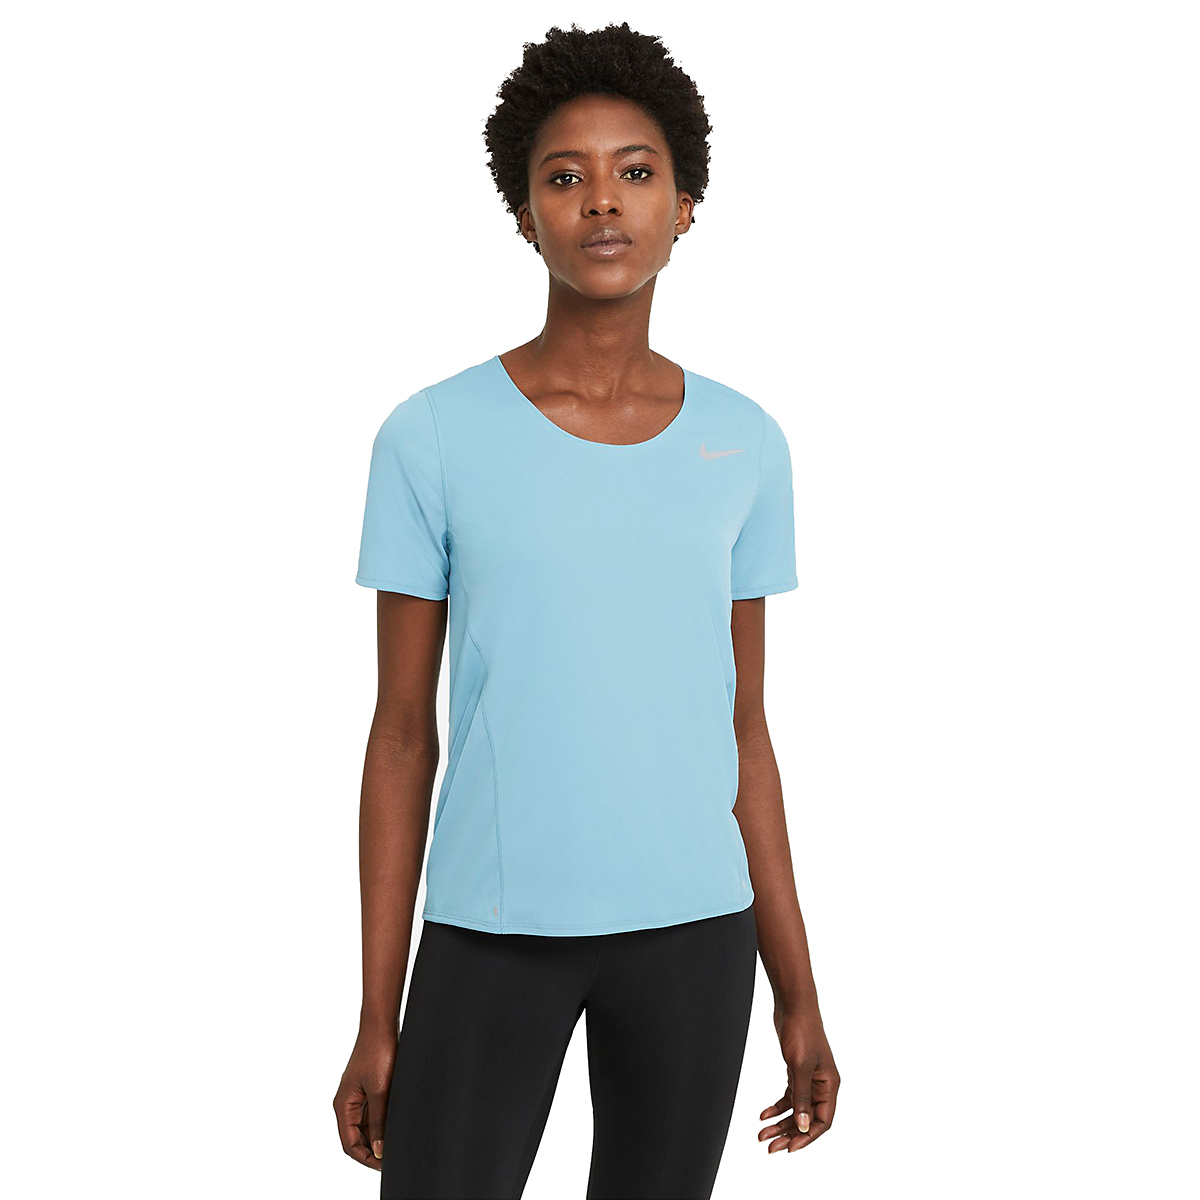 Women's Nike City Sleek Short Sleeve Top - Color: Cerulean/Reflective Silver - Size: XS, Cerulean/Reflective Silver, large, image 2